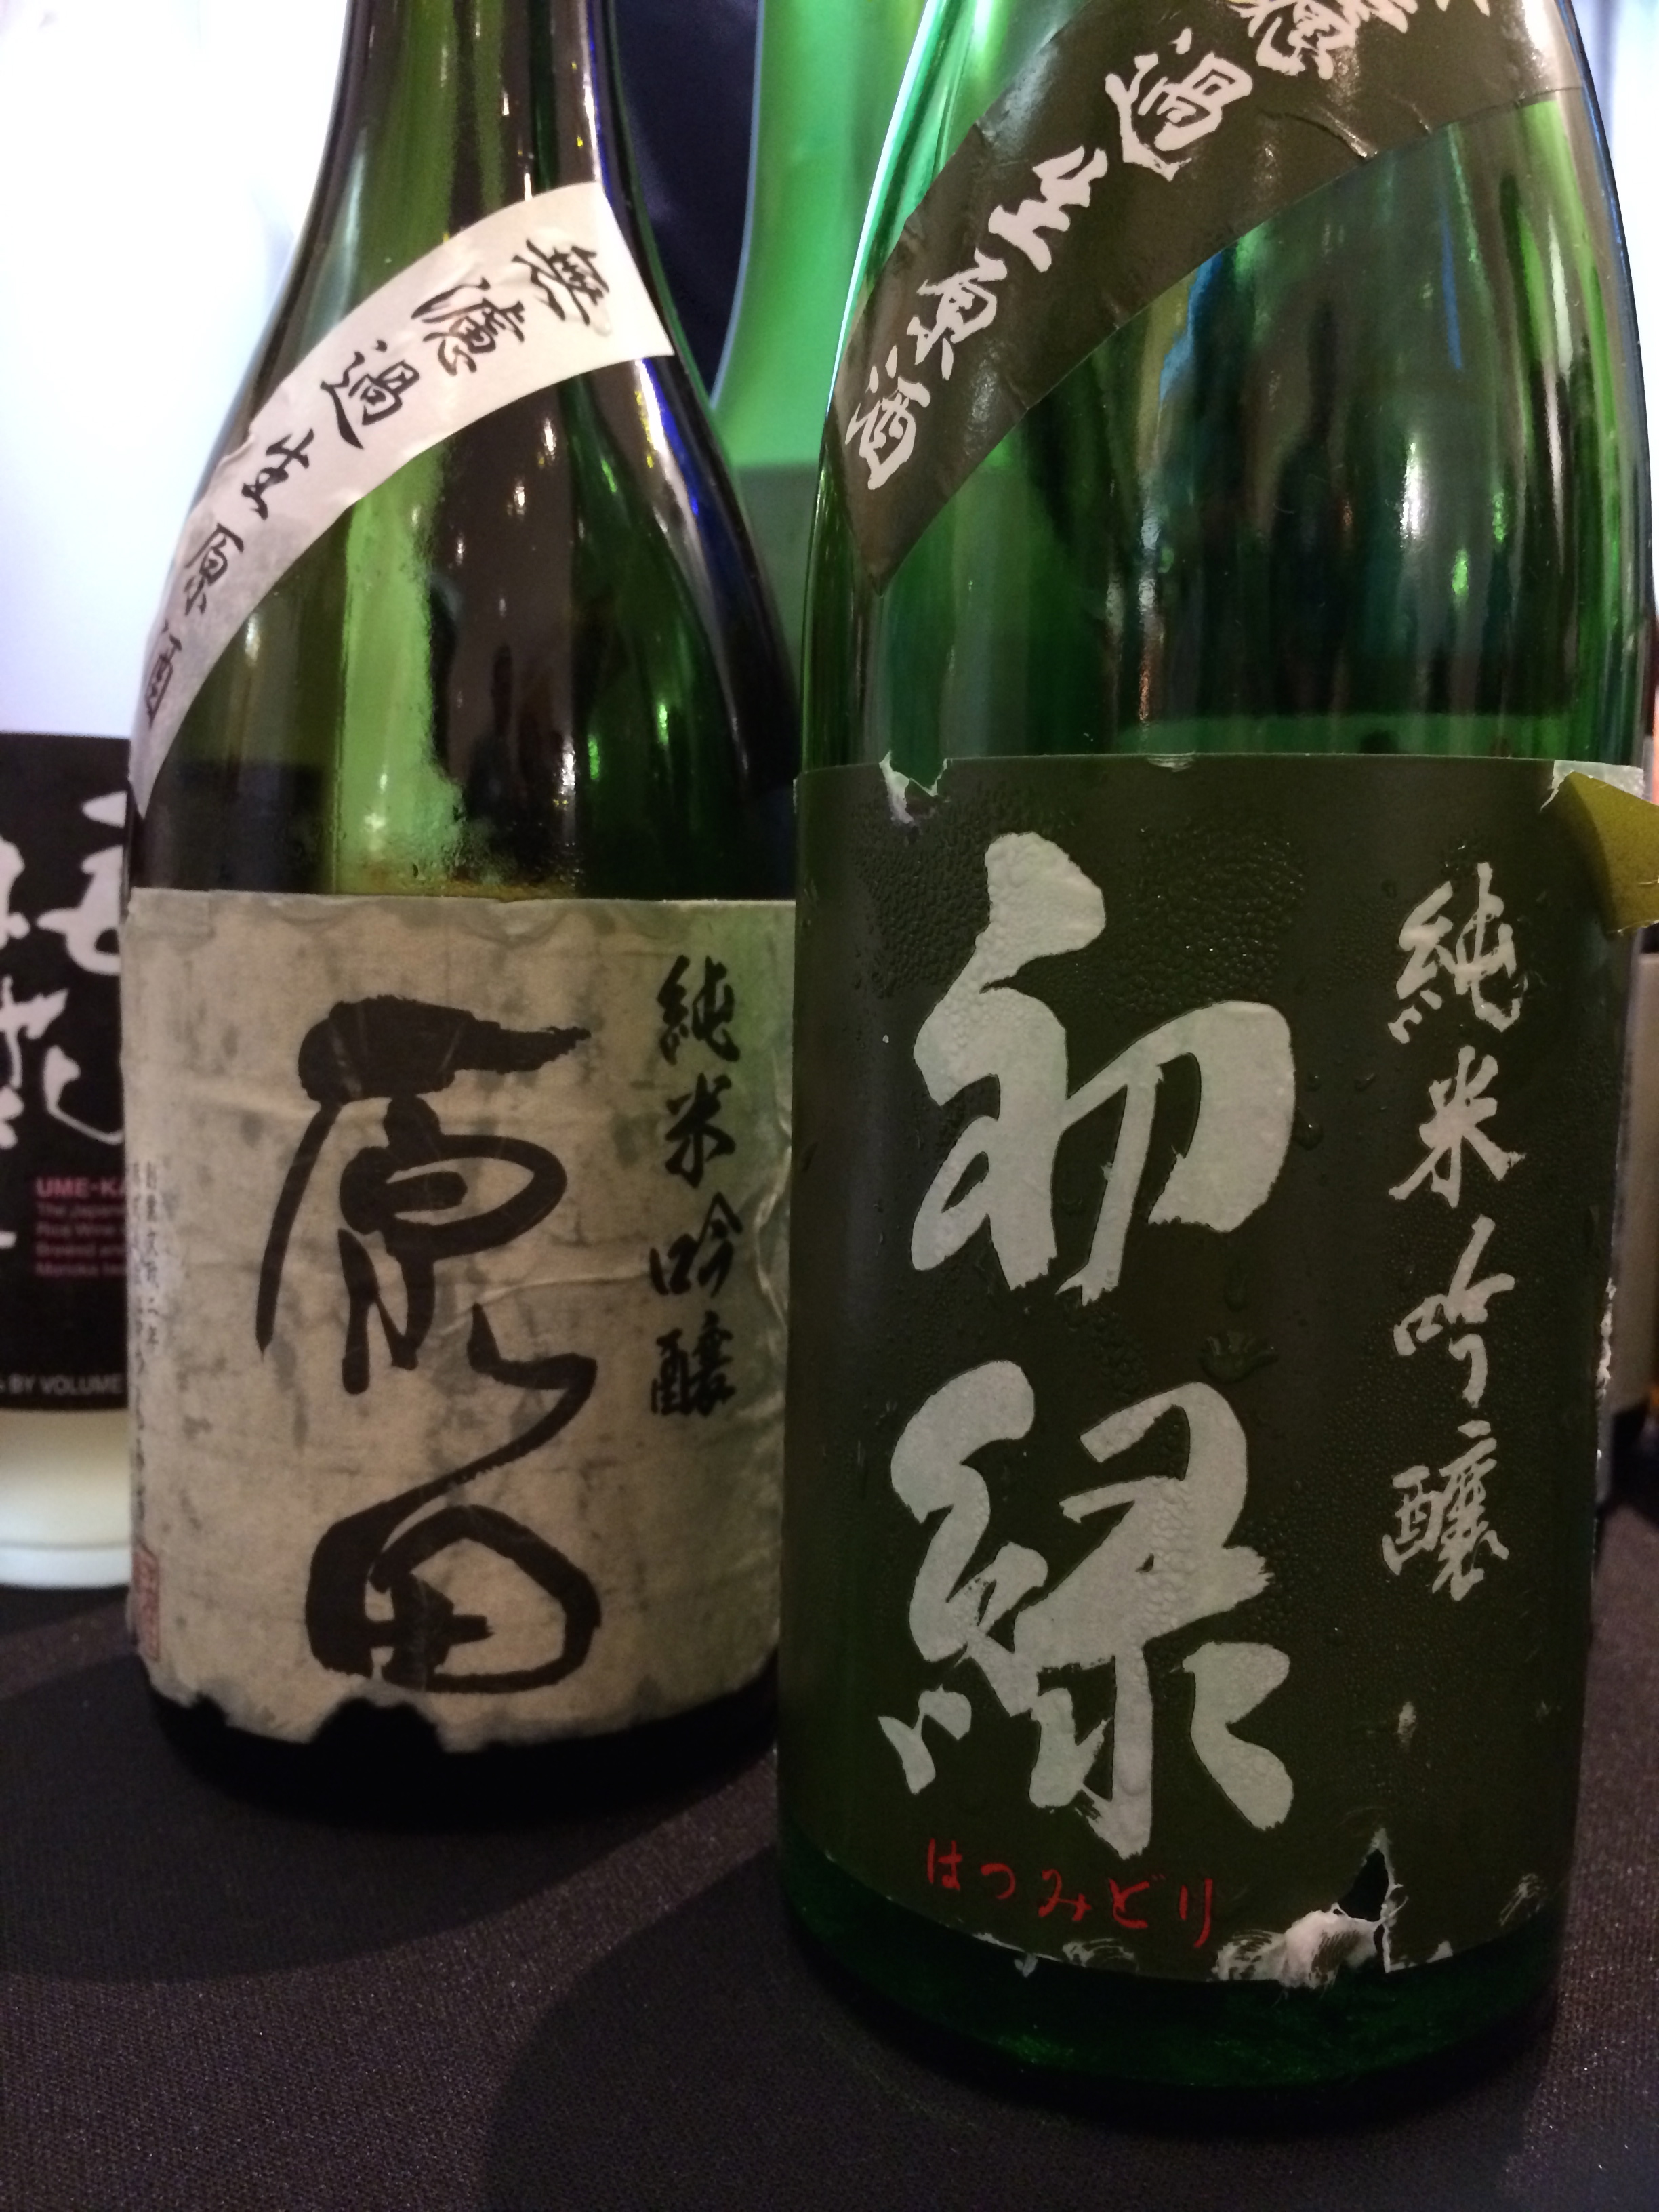 Harada & Hatsumidori: unfiltered, undiluted, unpasteurized - muroka nama genshu, which has unique characteristics.